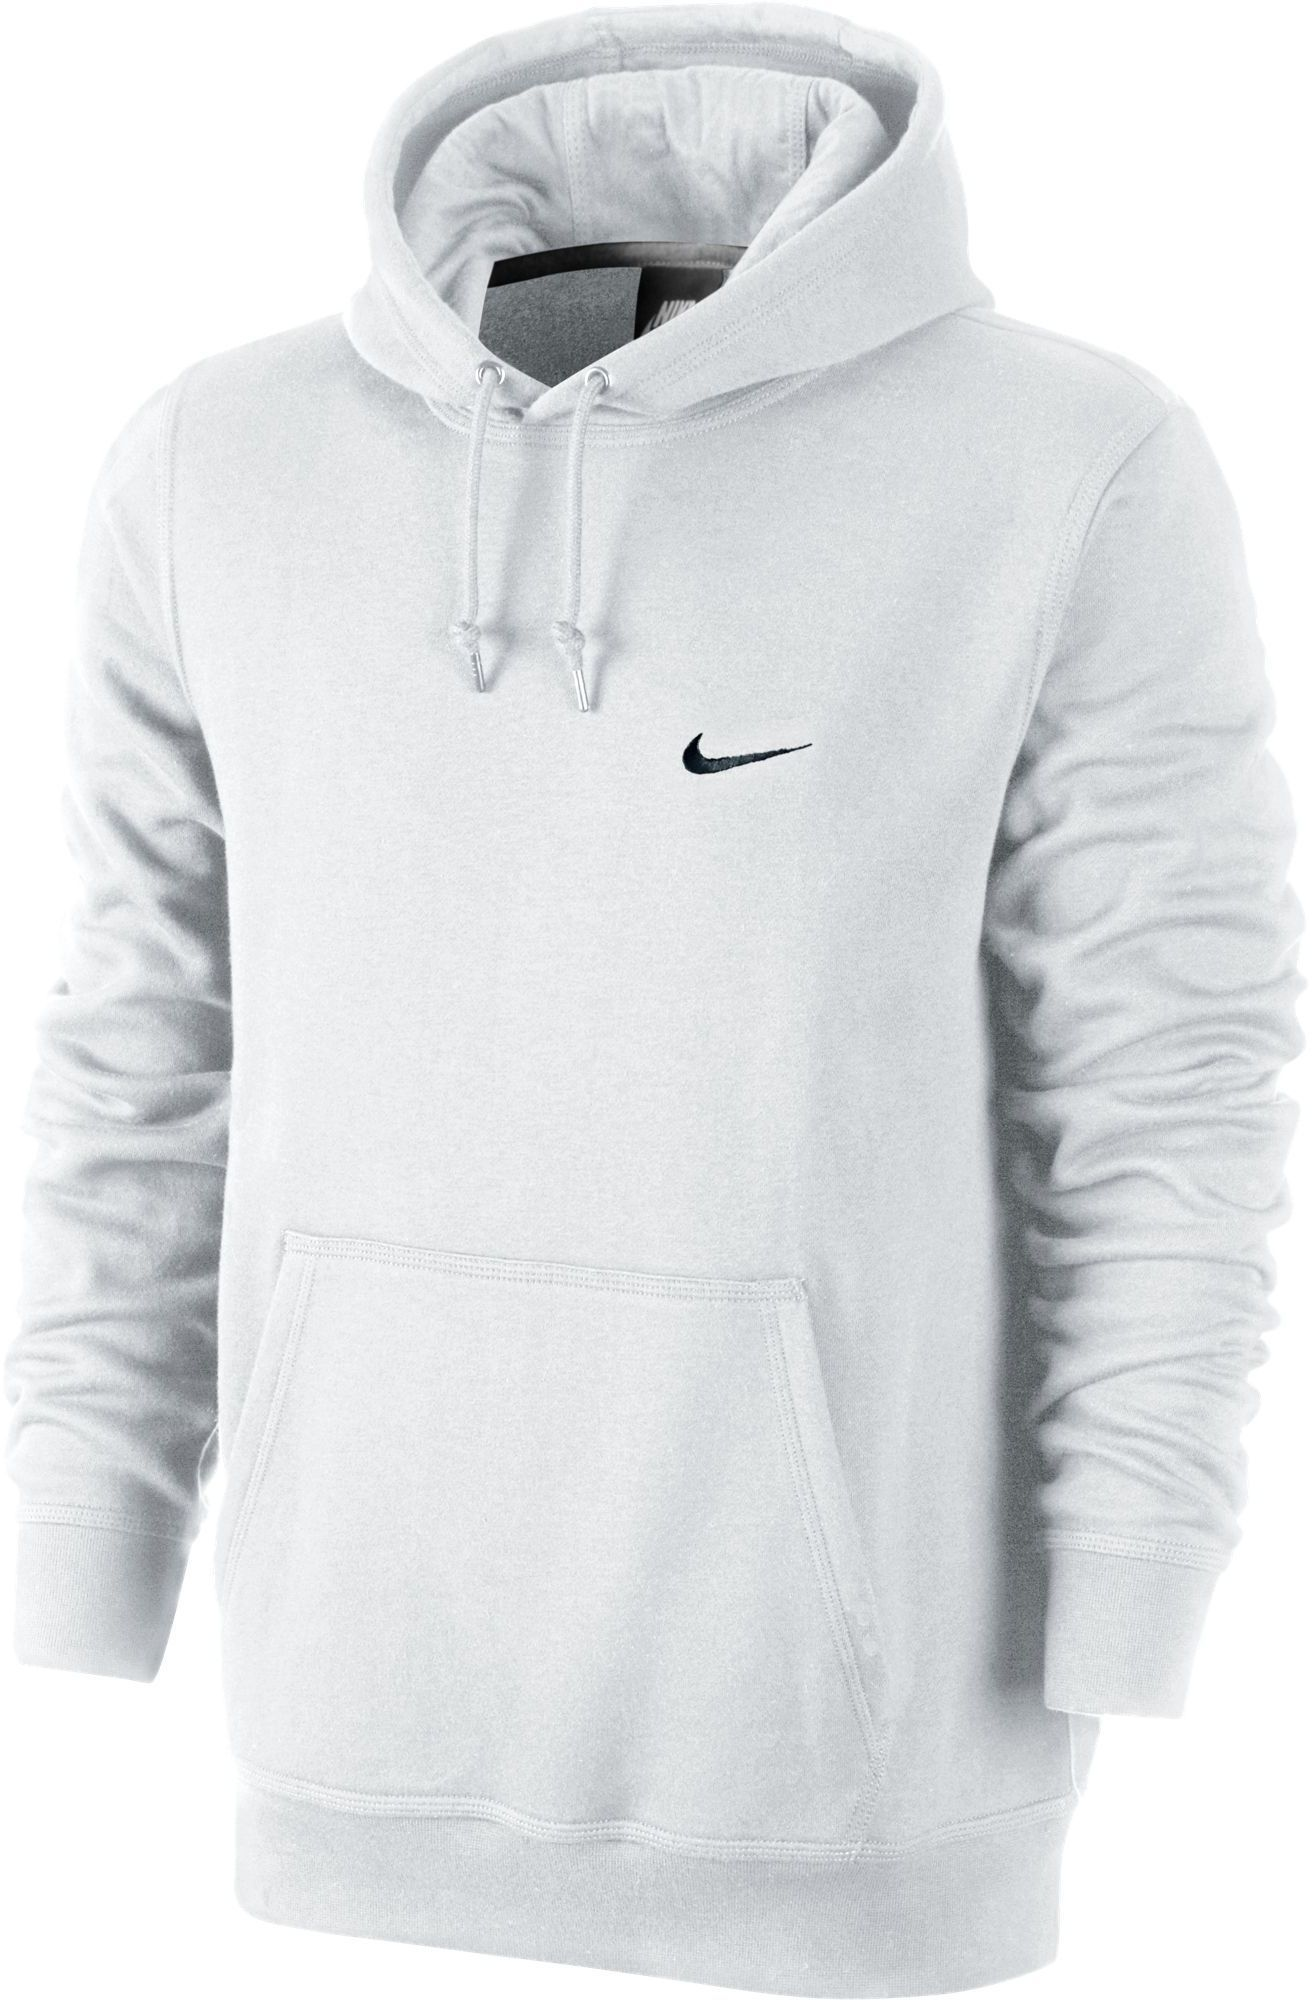 0aadf6b235a6 Nike Men s Classic Club Fleece Hoodie in 2019